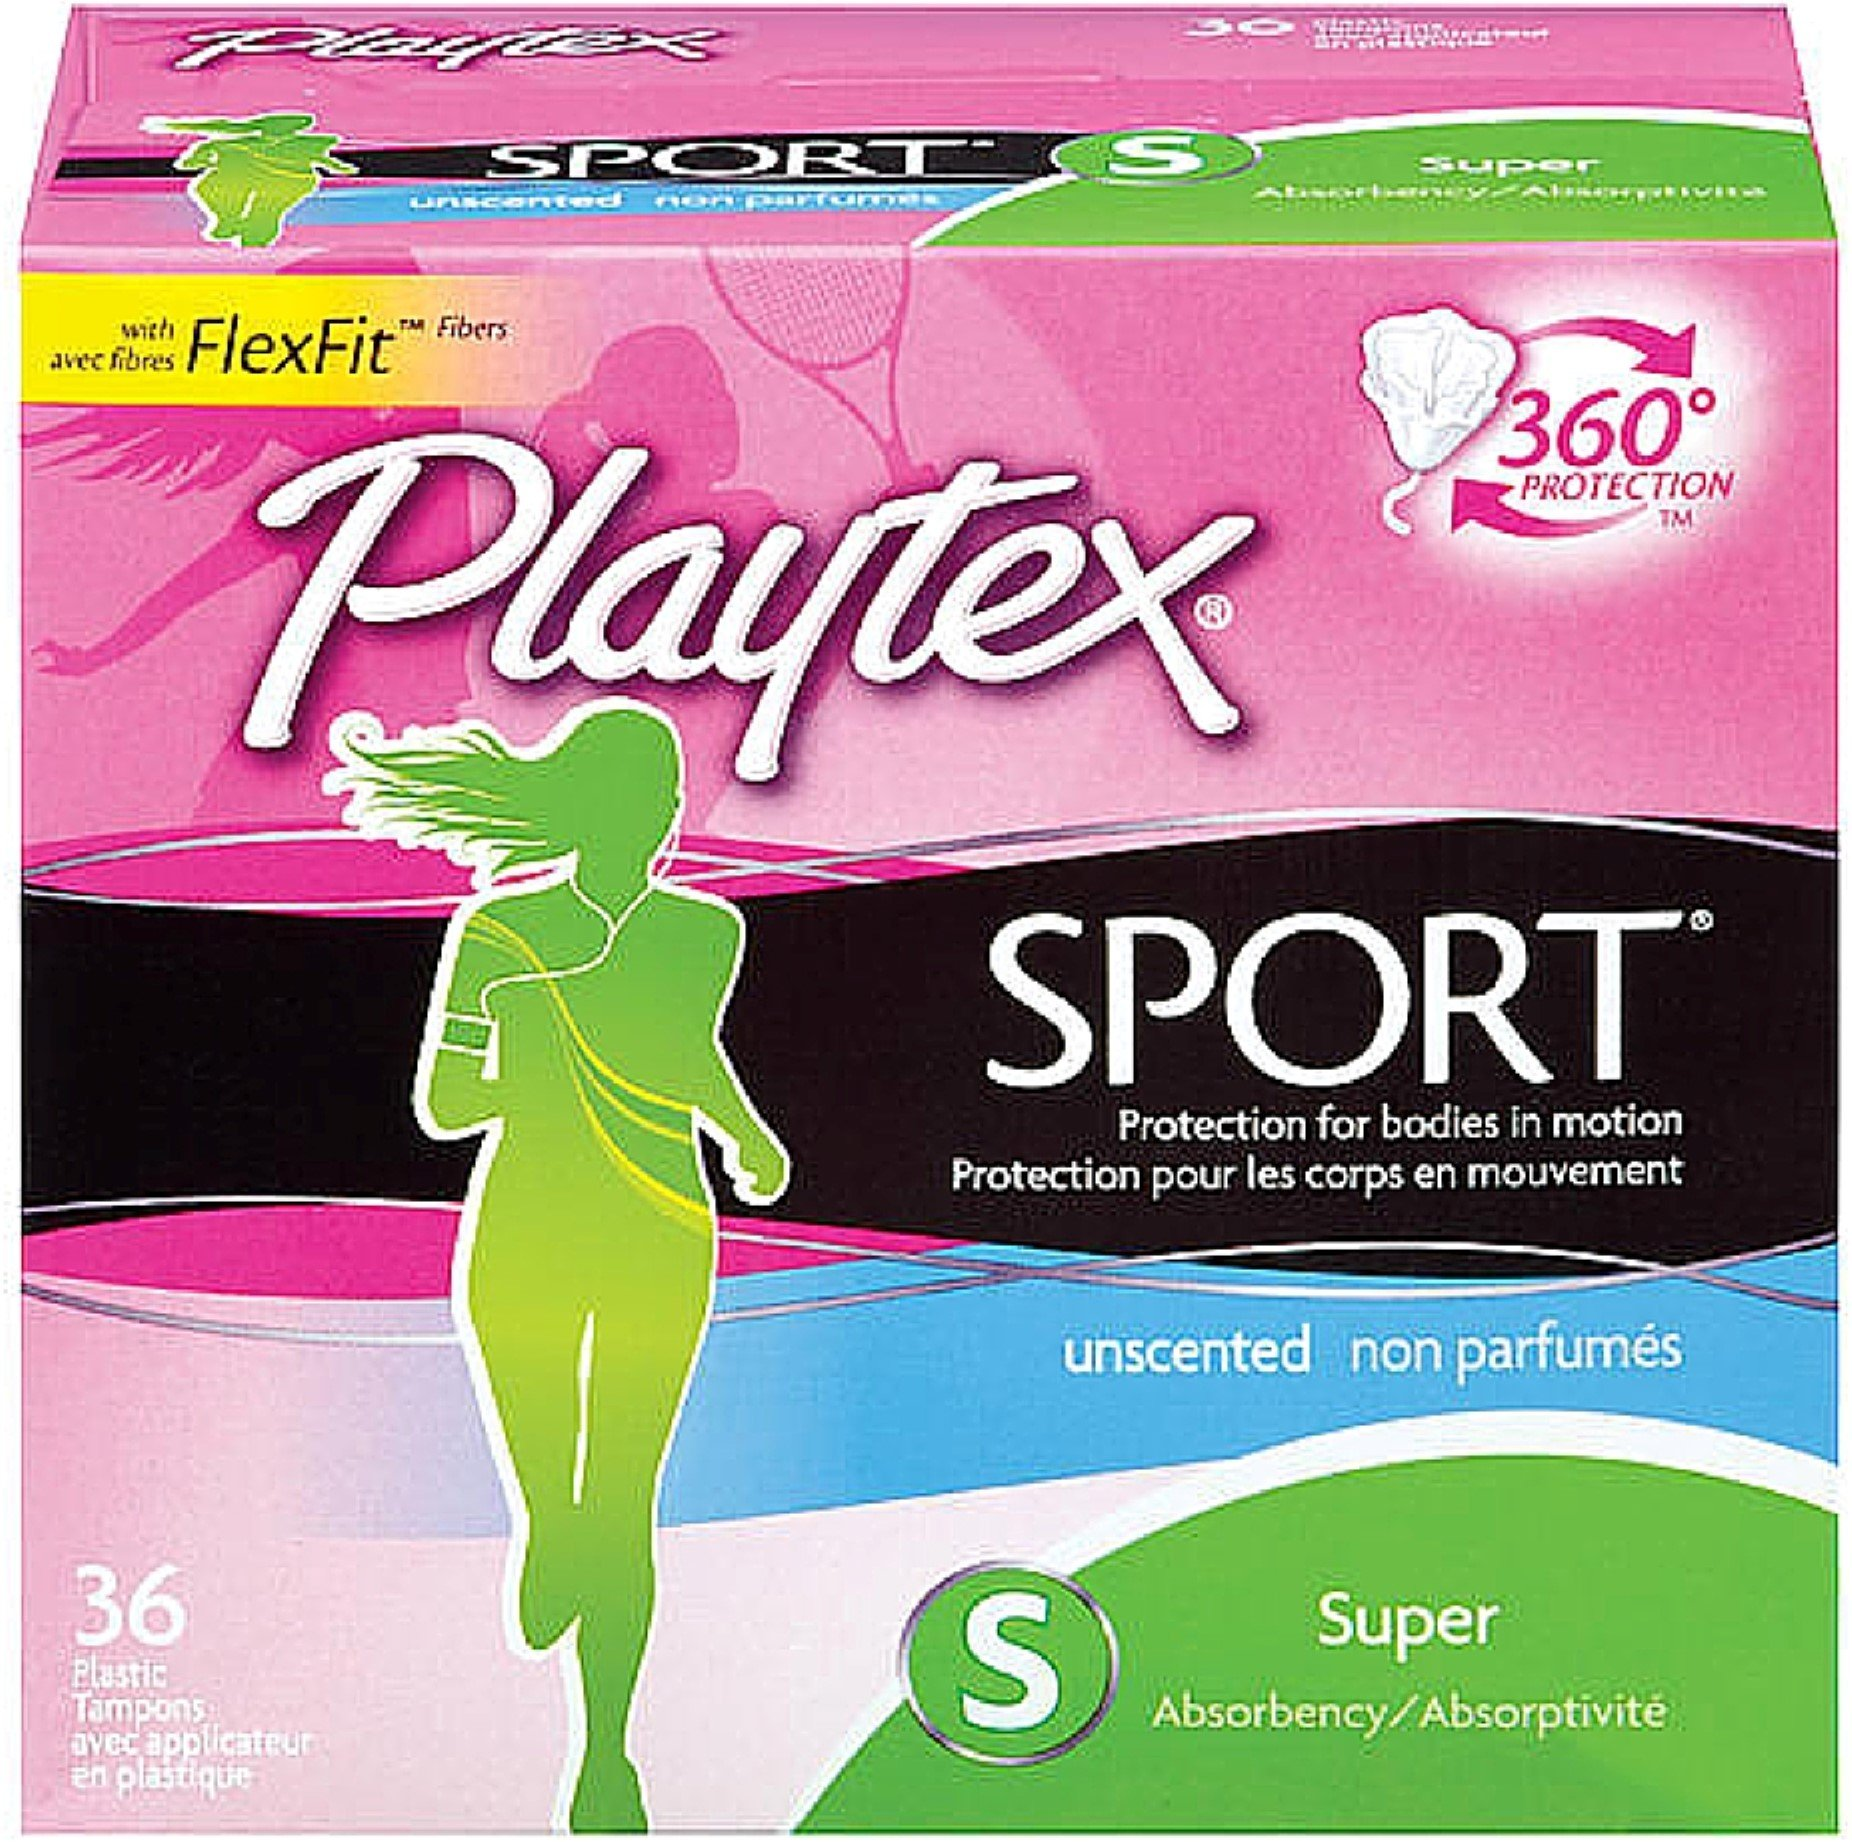 Playtex Sport Unscented Super Absorbency Tampons 36 ea (Pack of 10)